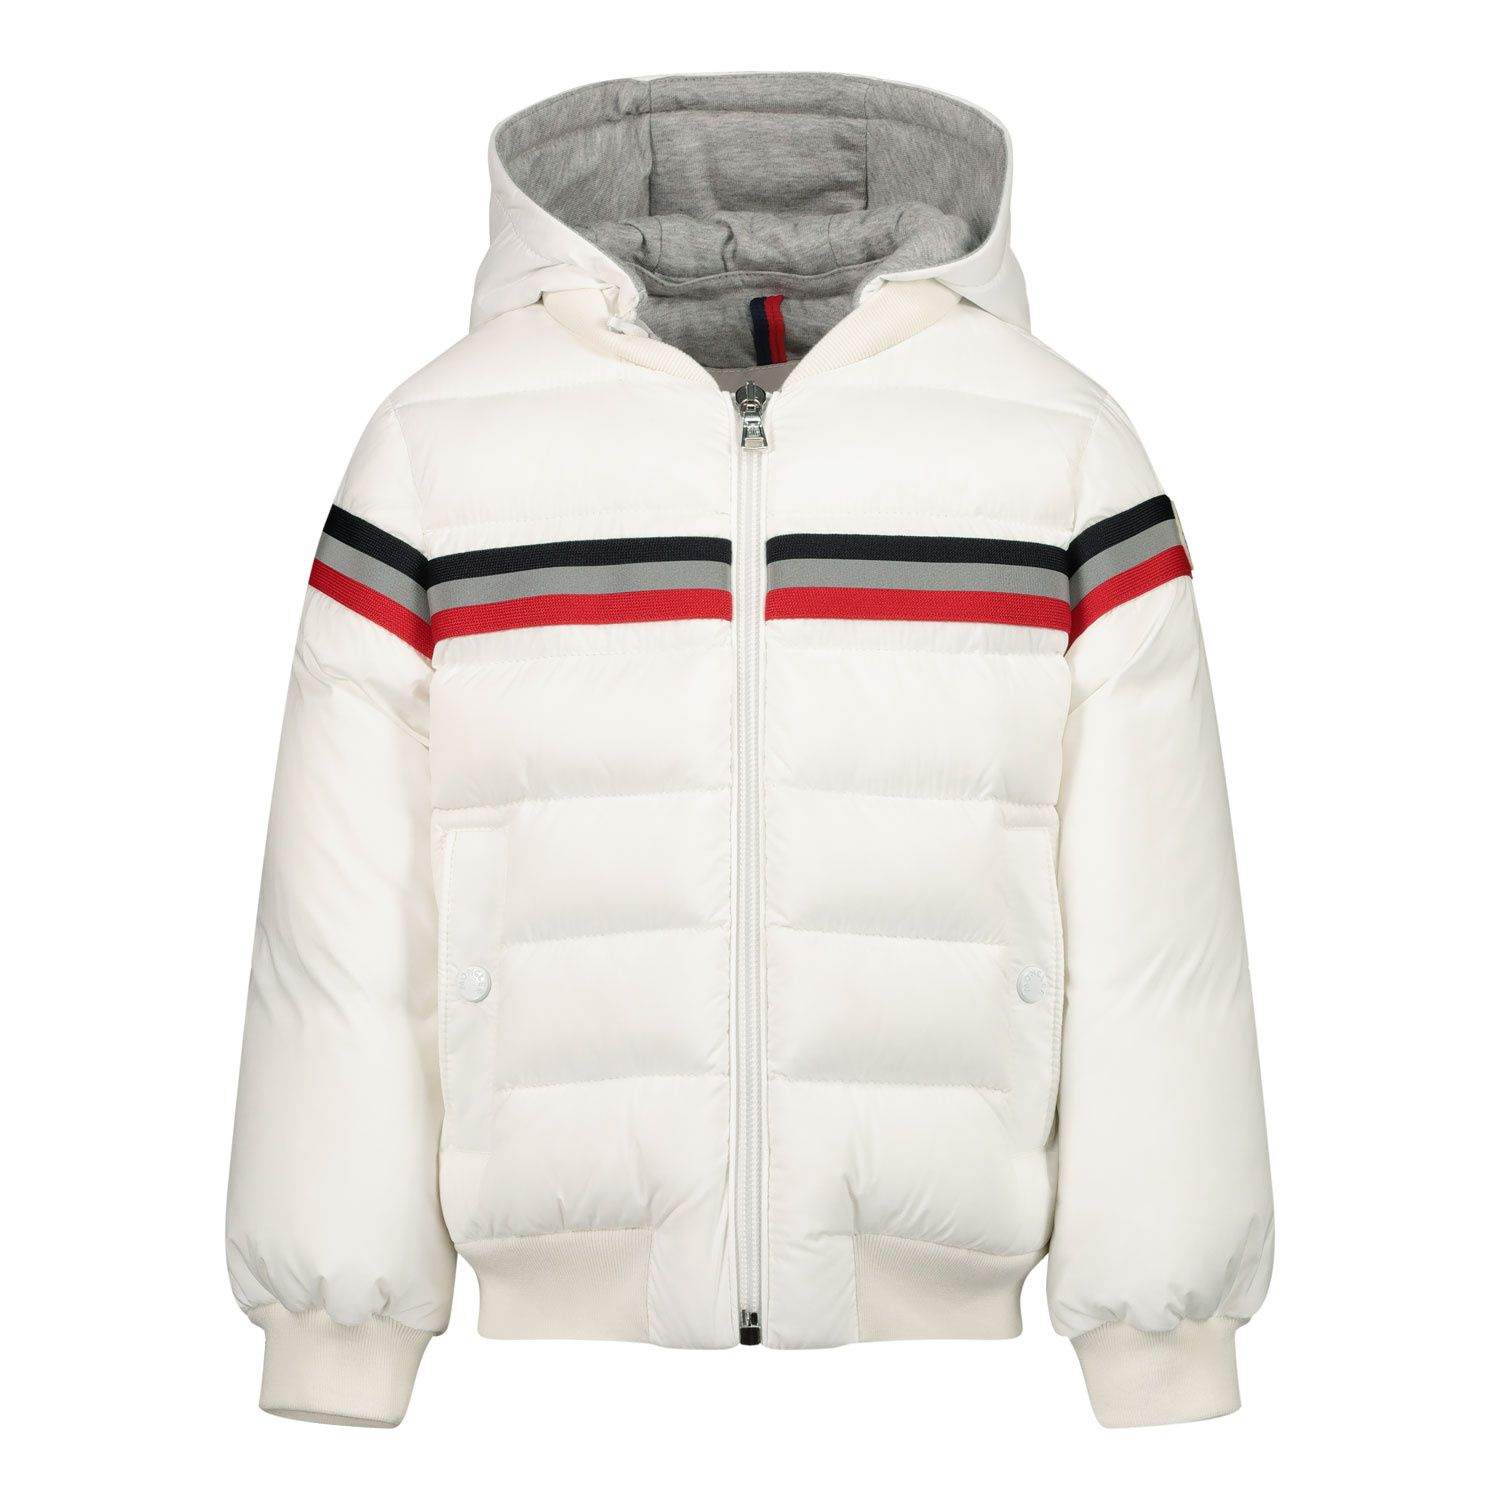 Picture of Moncler 1A51520 baby coat off white